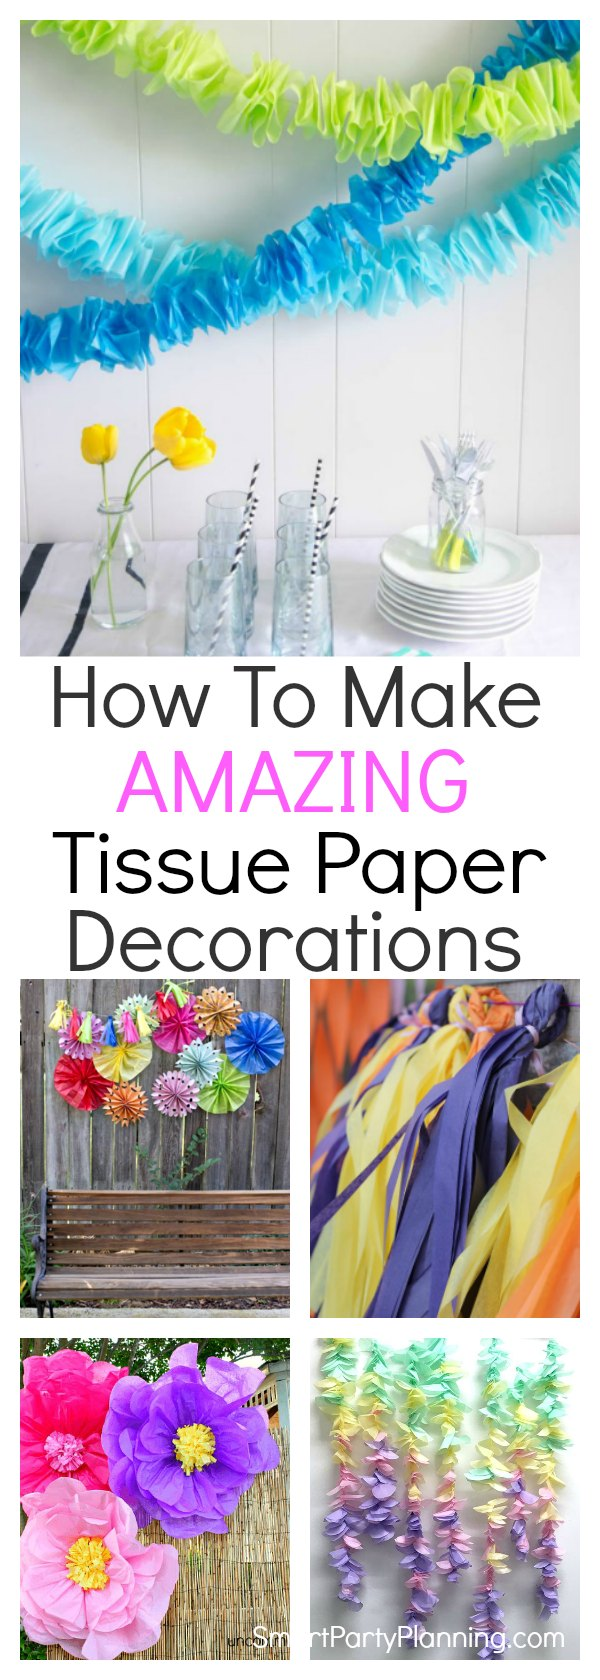 Learn how to make 11 amazing tissue paper decorations.DIY decorations are always good for the party budget, and tissue paper makes an awesome backdrop, pom poms and garlands. Suitable for all color schemes these DIY tutorials will get your creative juices flowing.They are all easy to make and great for all kinds of parties from a birthday celebration to baby showers. No: 11 is going to look amazing! #Tissuepaperdecorations #Howtomake #DIY #Easy